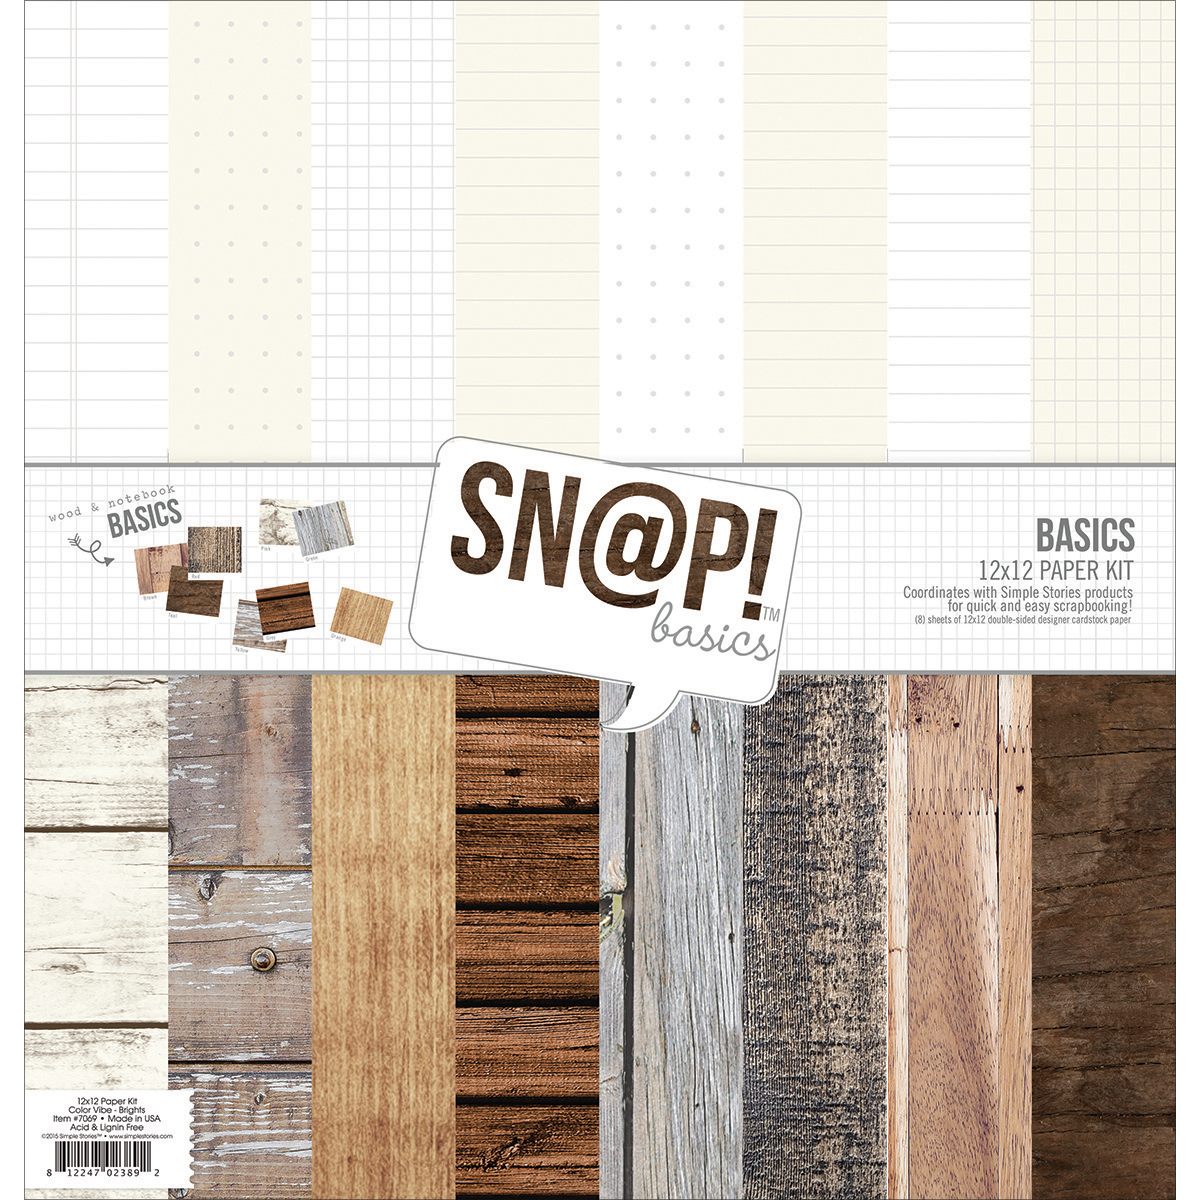 Sn@p! Wood & Notebook Basics Paper KitSimple Stories Double-Sided Paper Pack 12X12 8/Pkg